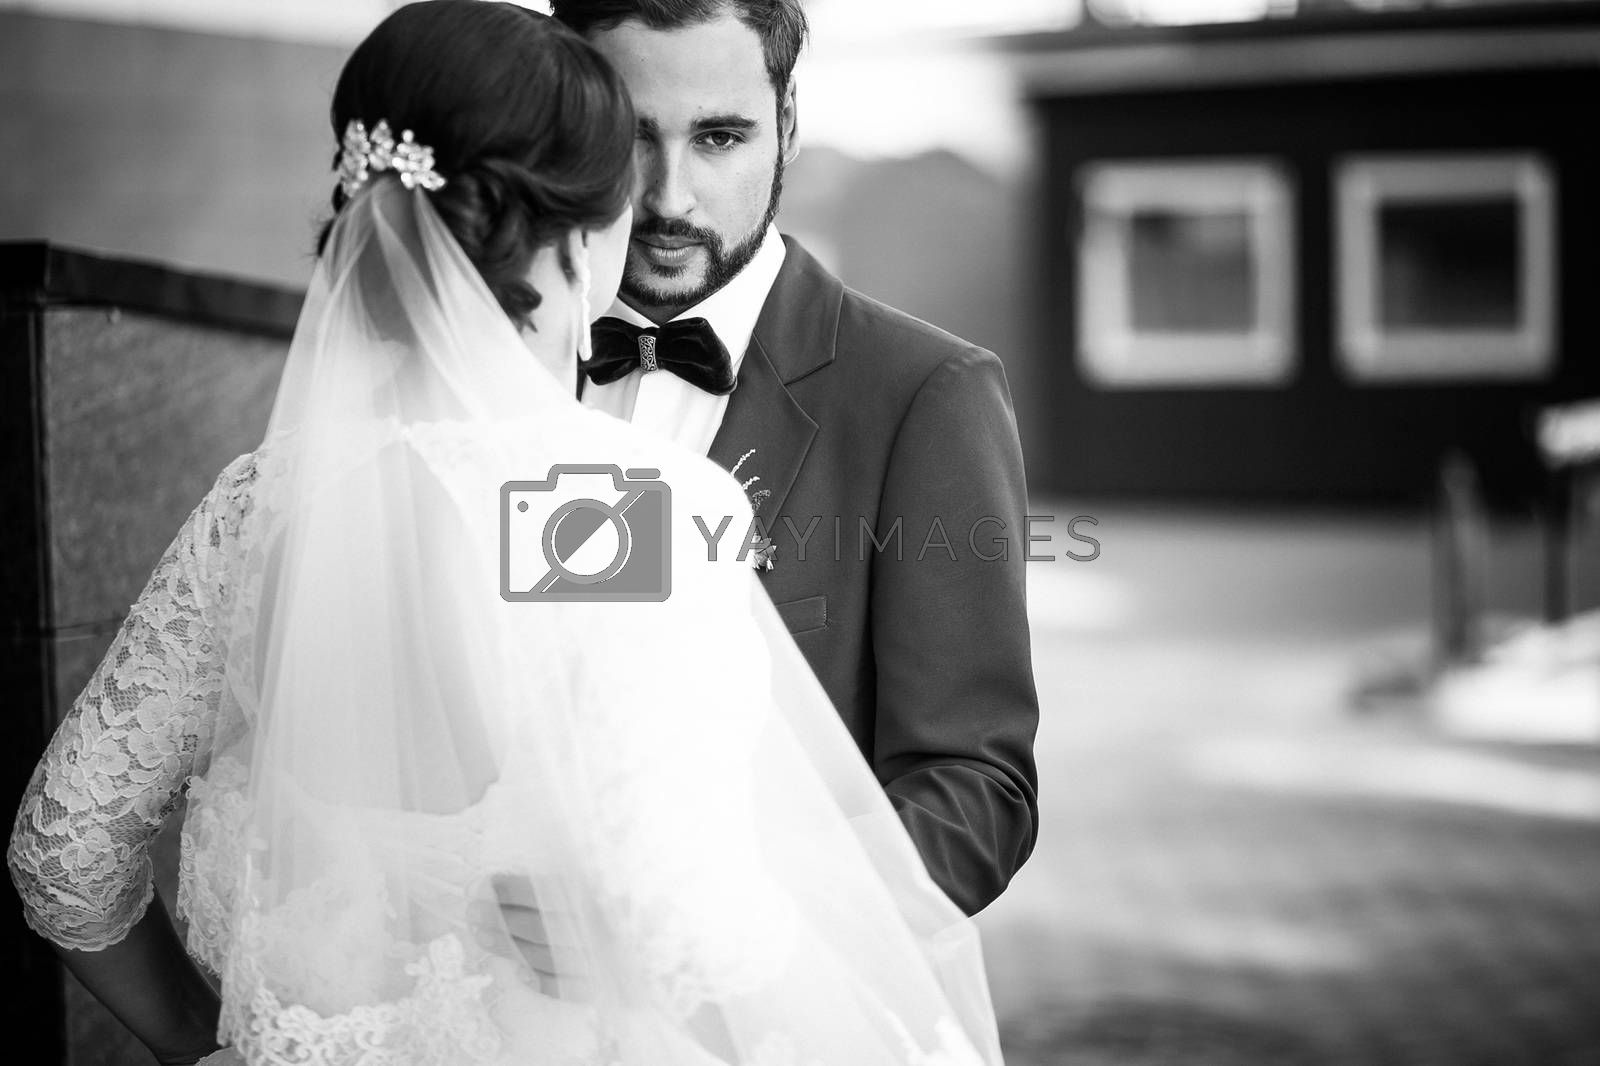 The bride and groom black and white portrait. The man has a serious look, wedding retro classic.